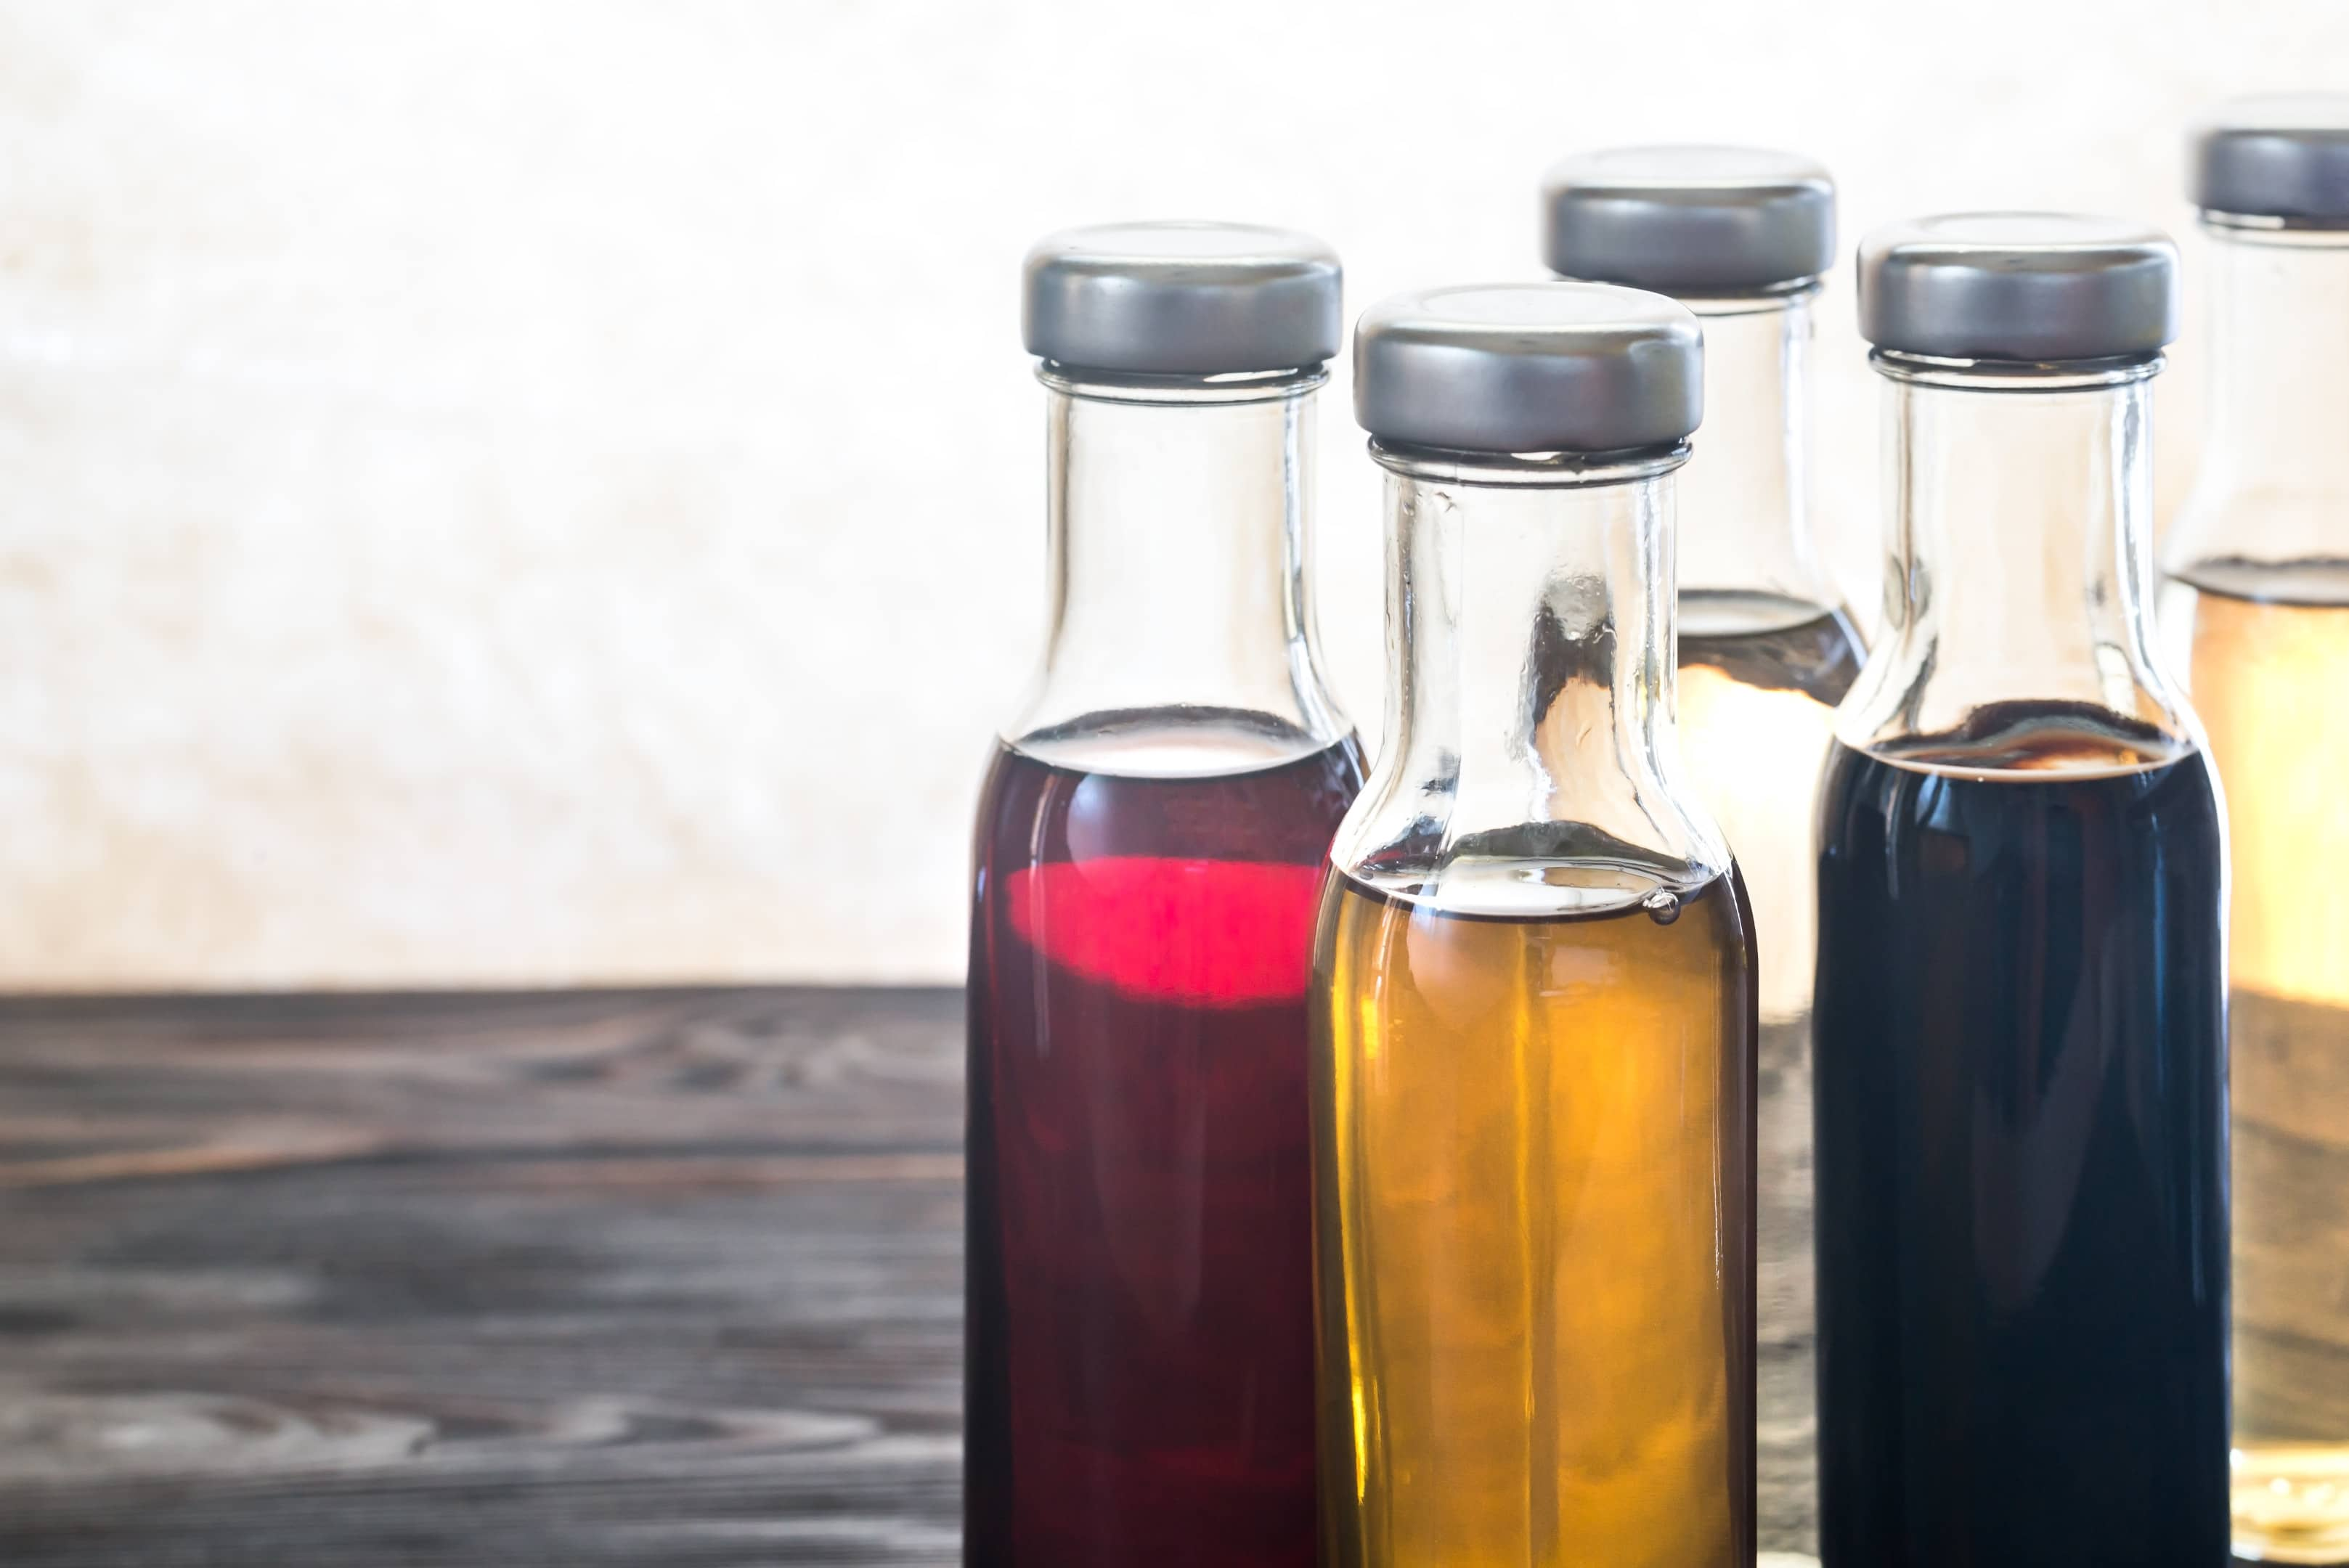 Bottles with different kinds of vinegar on wooden table